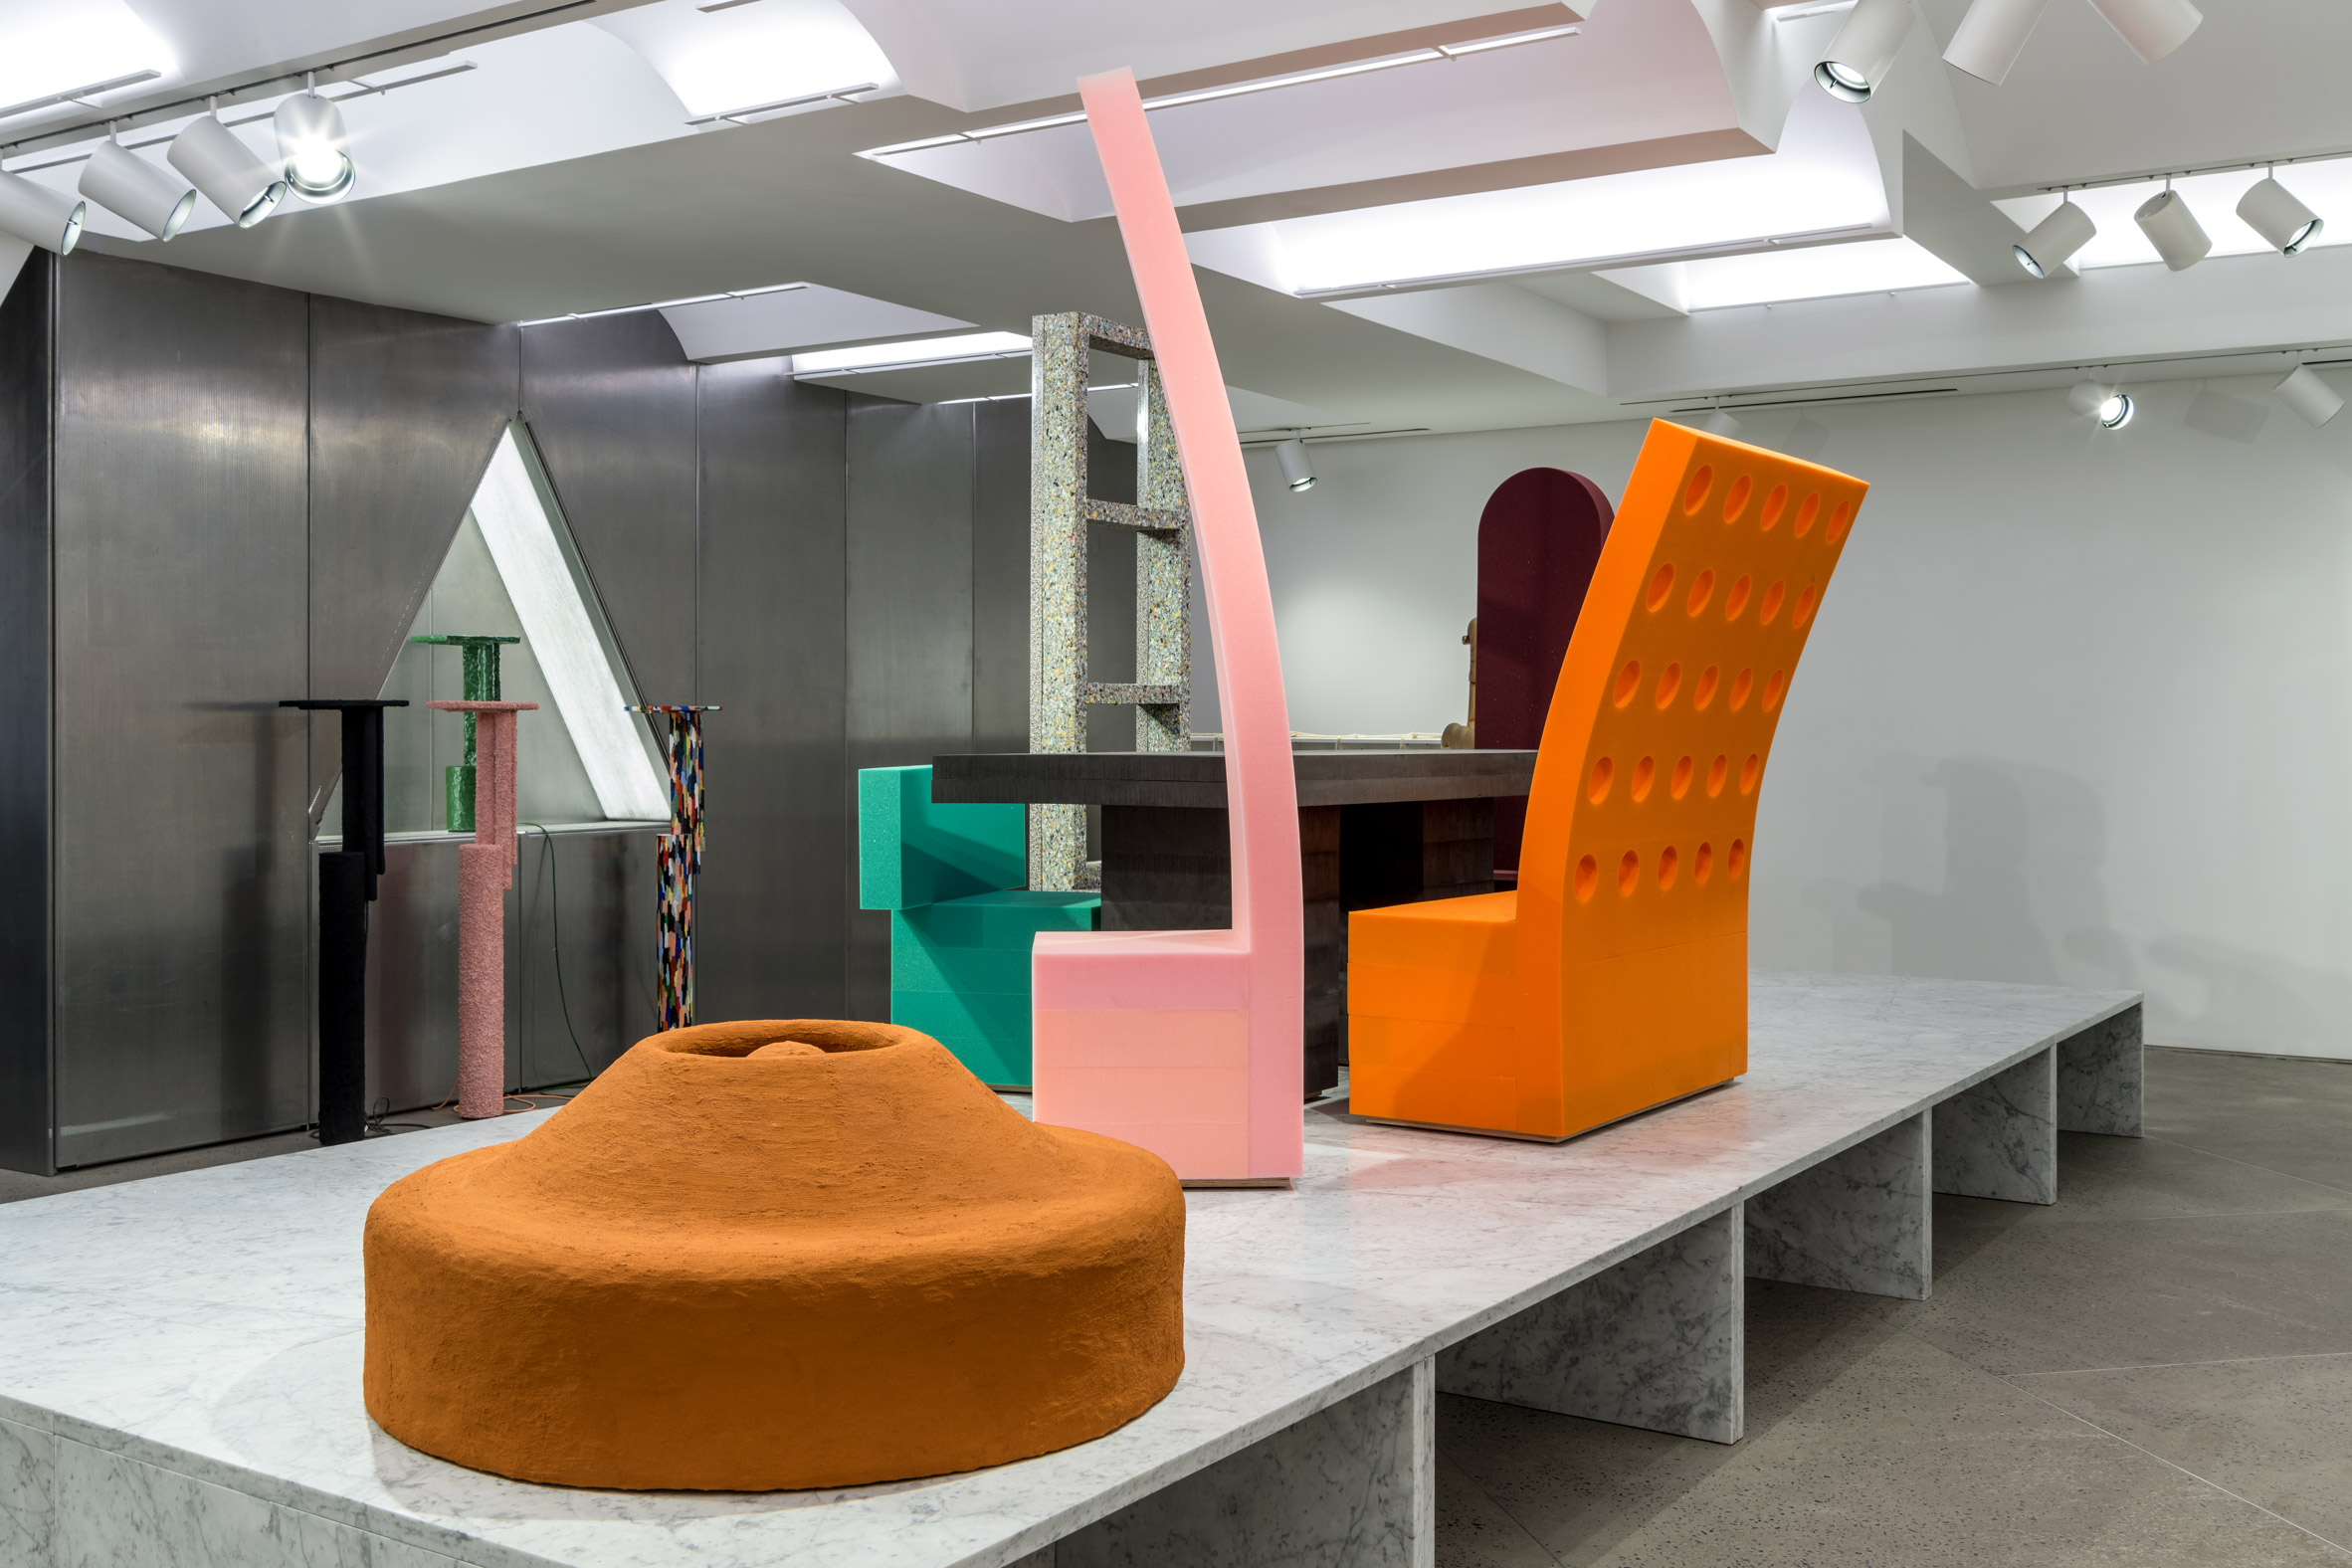 Cartoon furniture among unconventional domestic items on show at New York's Chamber gallery